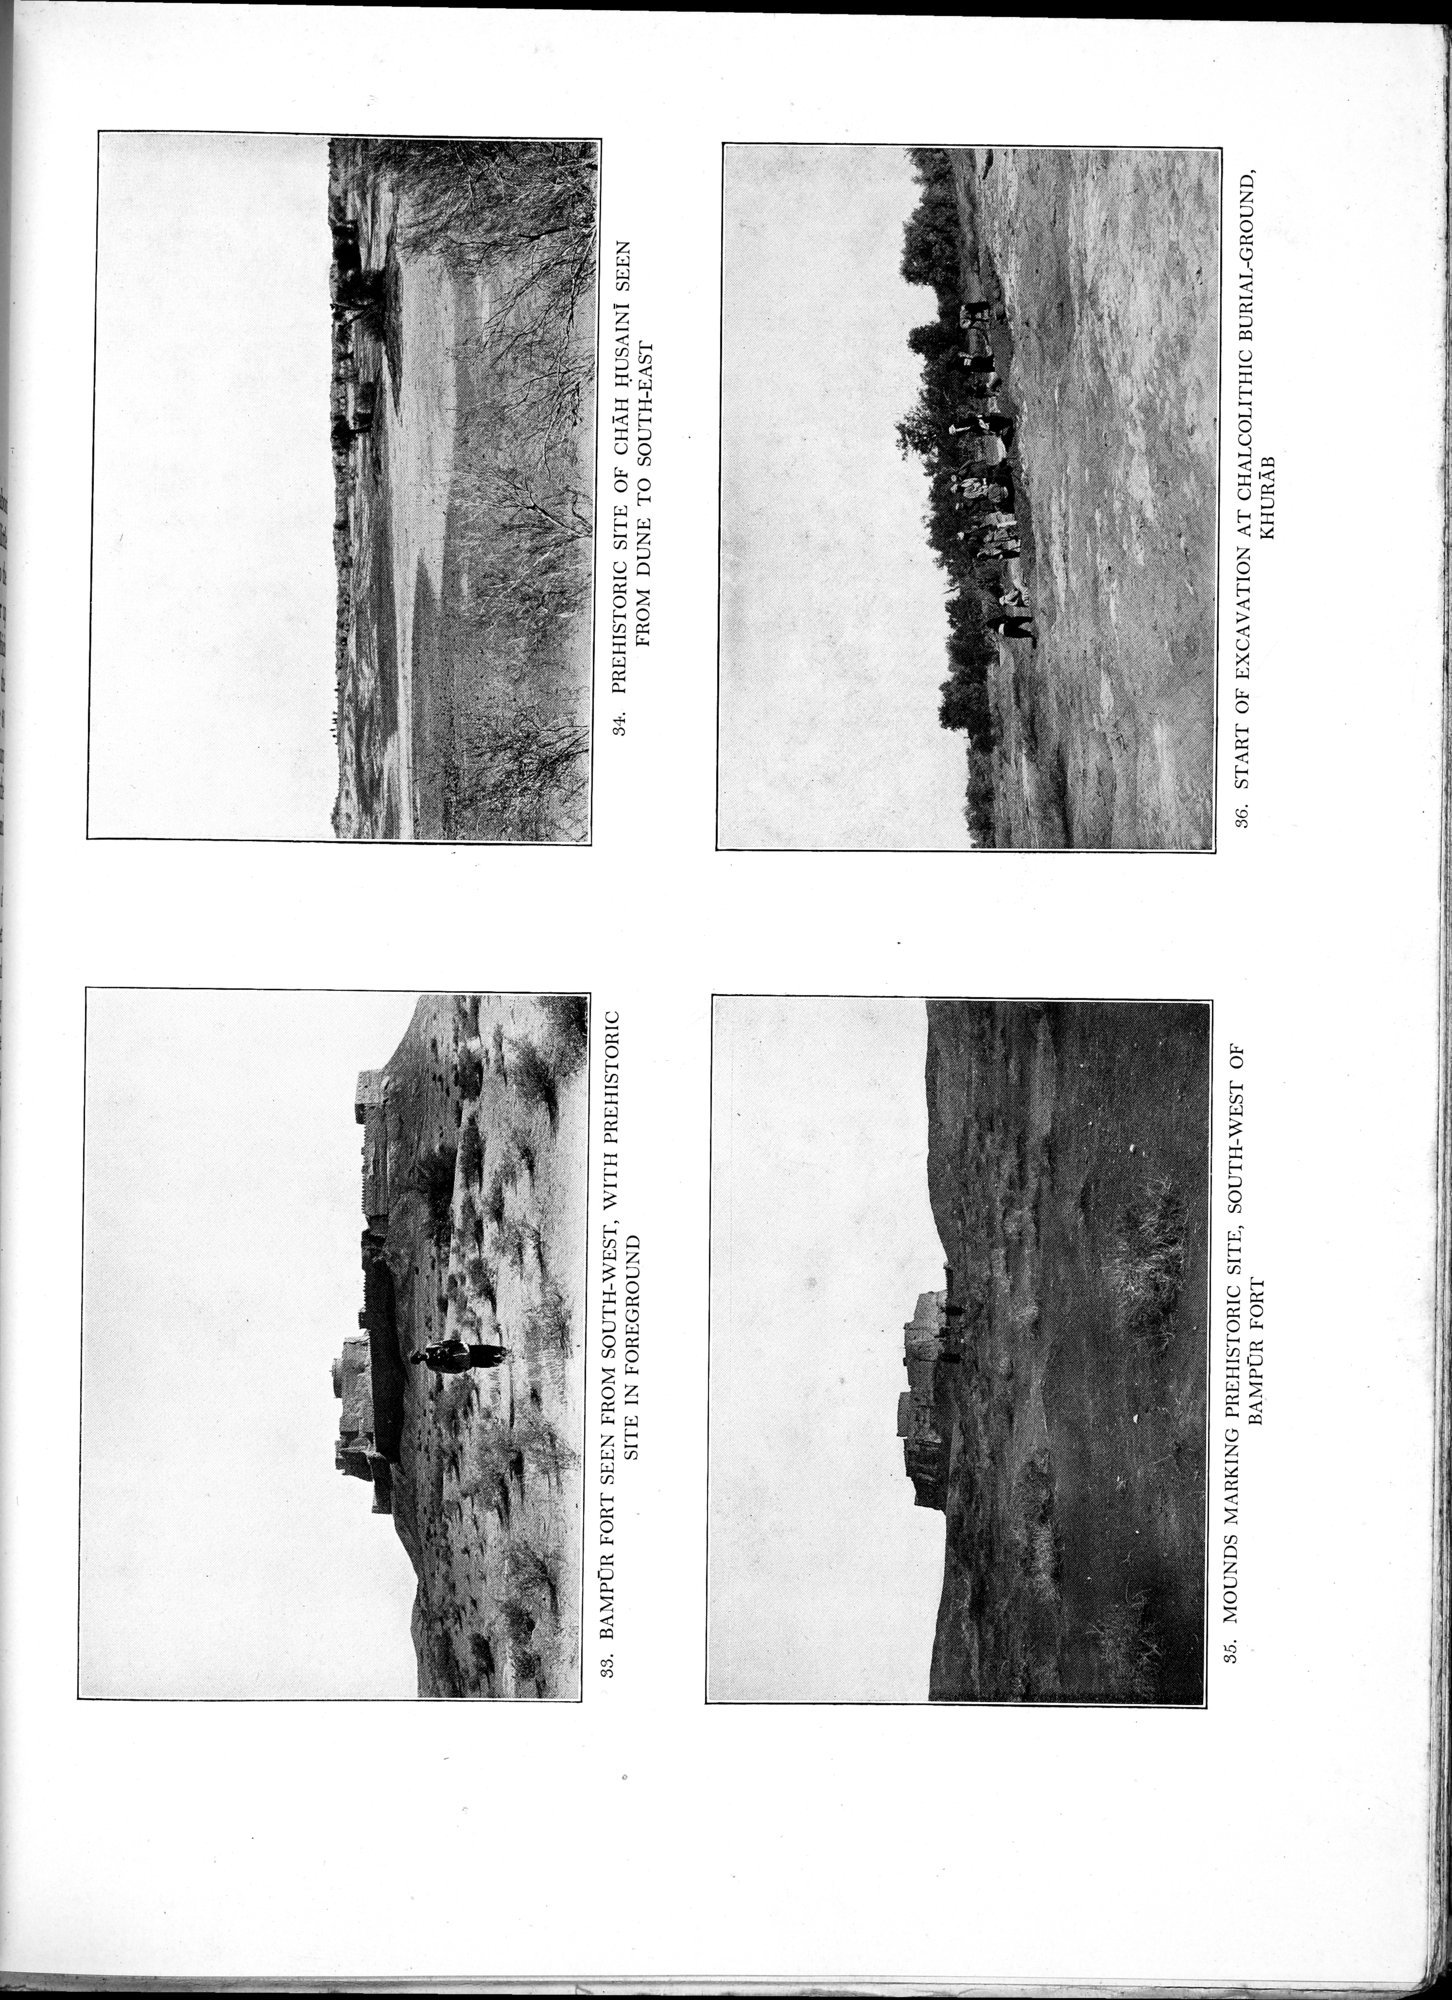 Archaeological Reconnaissances in North-Western India and South-Eastern Īrān : vol.1 / Page 155 (Grayscale High Resolution Image)